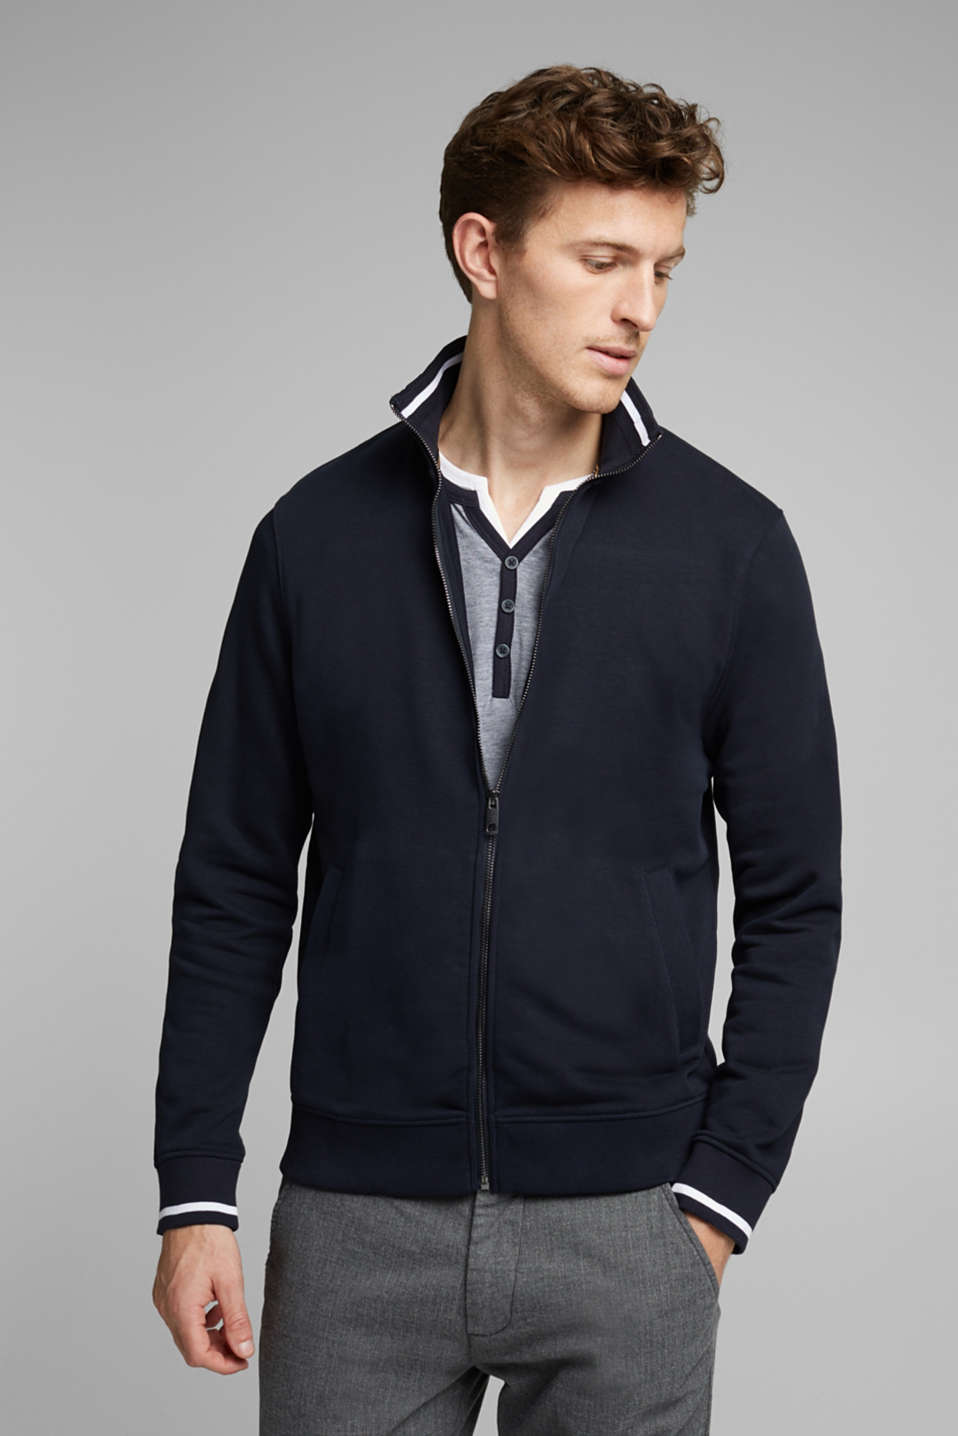 Esprit - Recycled: sweatshirt cardigan containing organic cotton